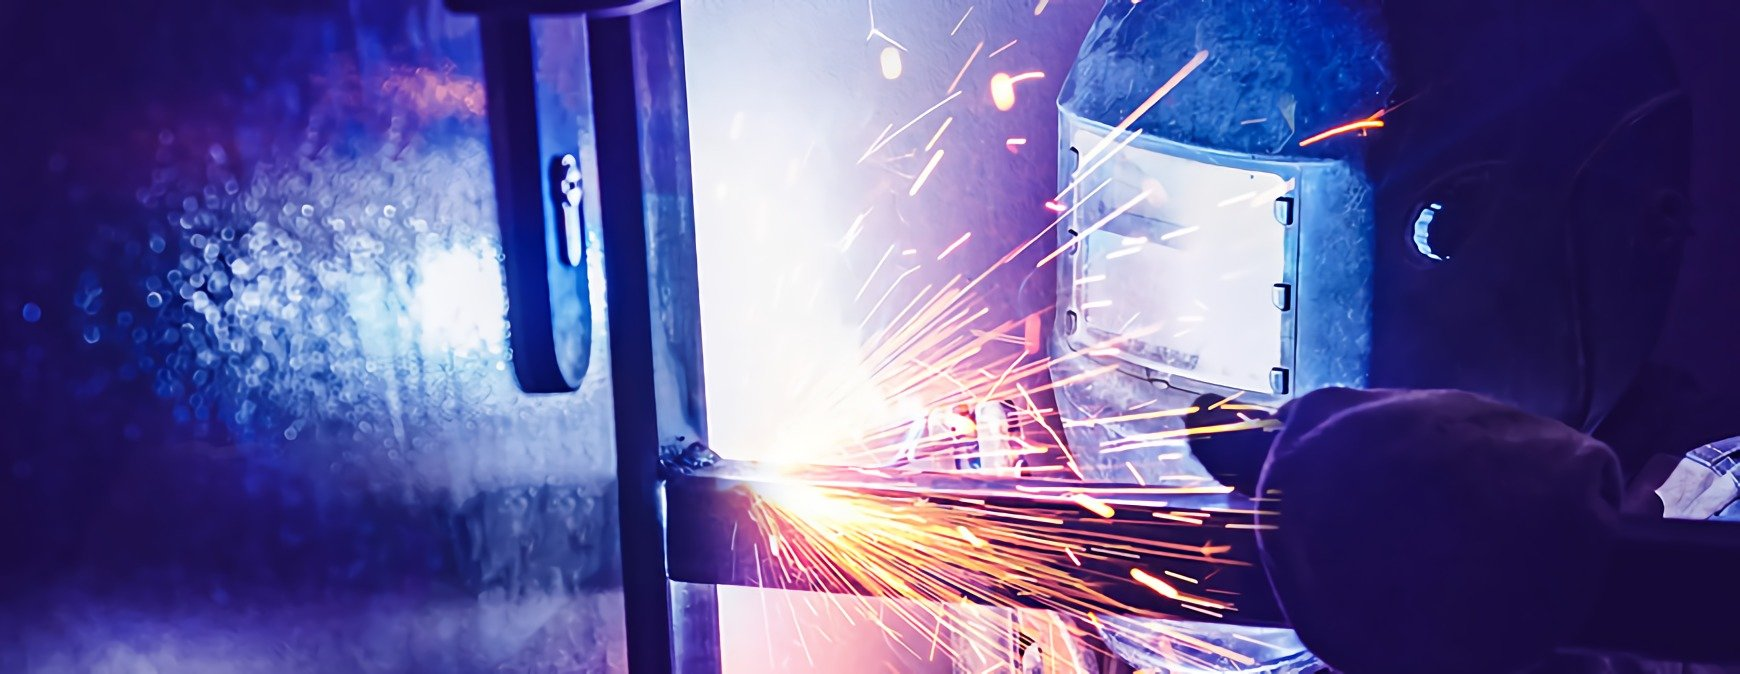 welder using pulsed welding